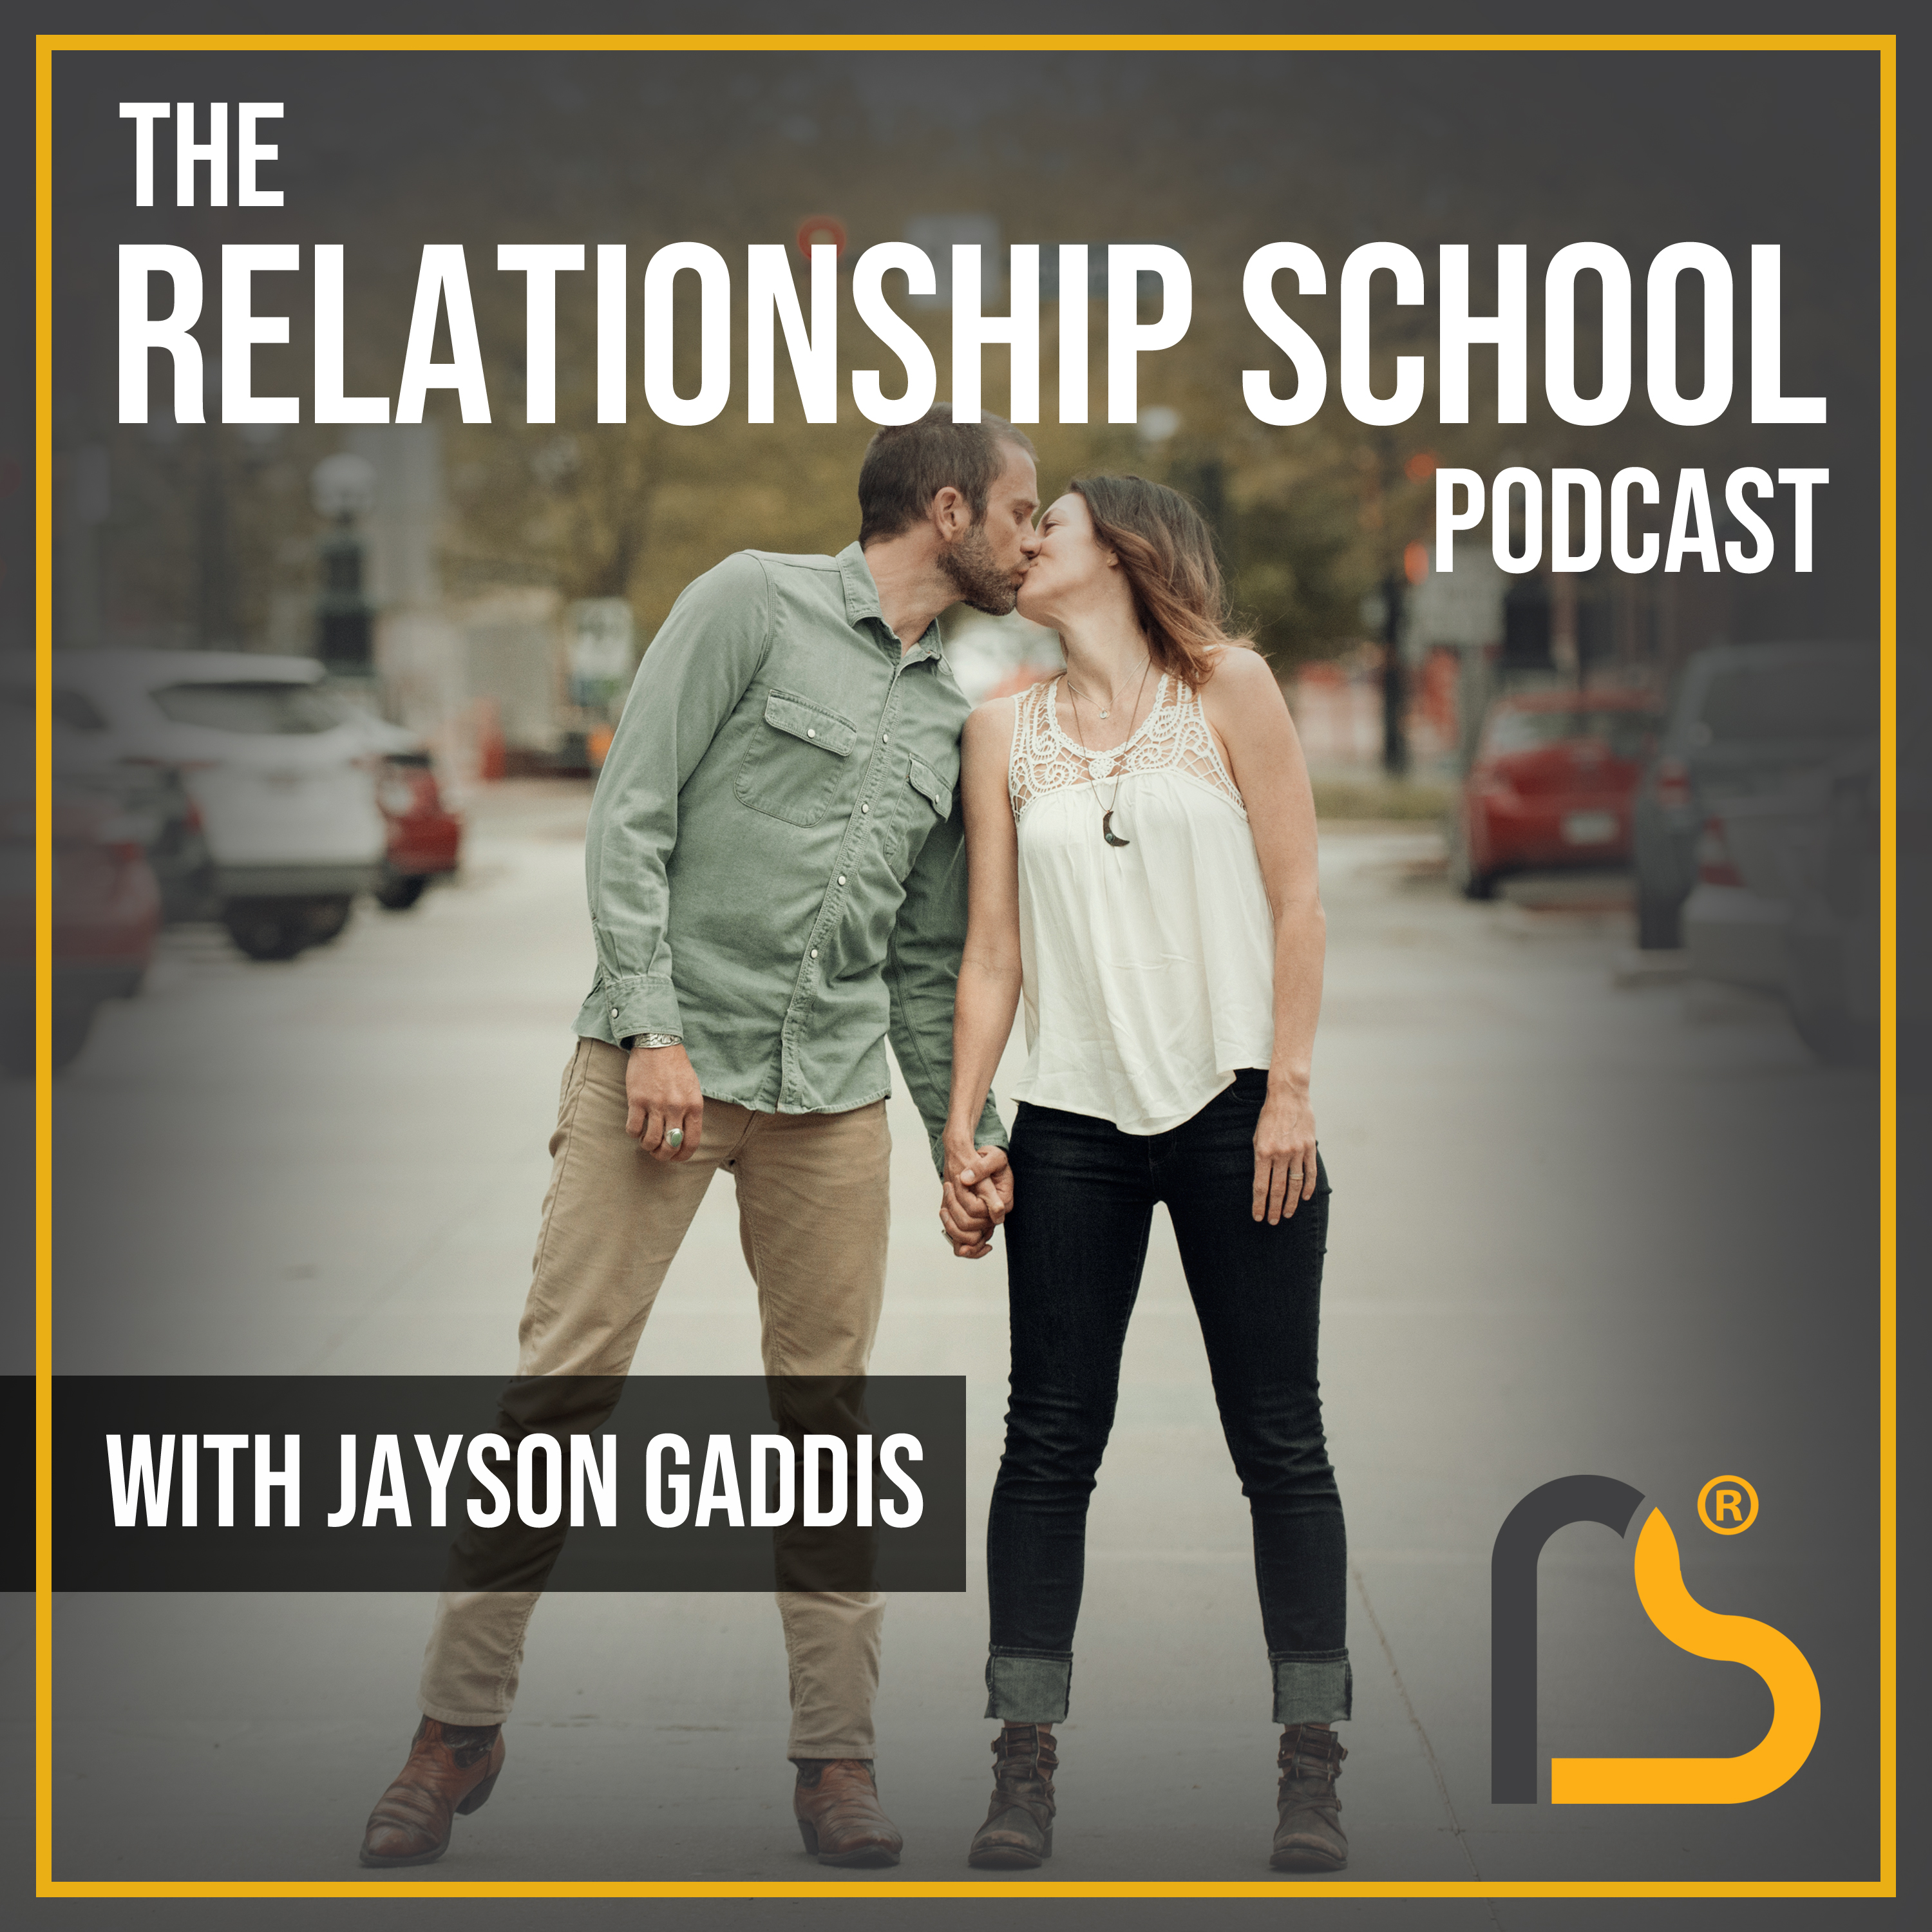 The Relationship School Podcast - Attachment Science & Getting to the Root Of A Couple's Problems - Relationship School Podcast Episode 261